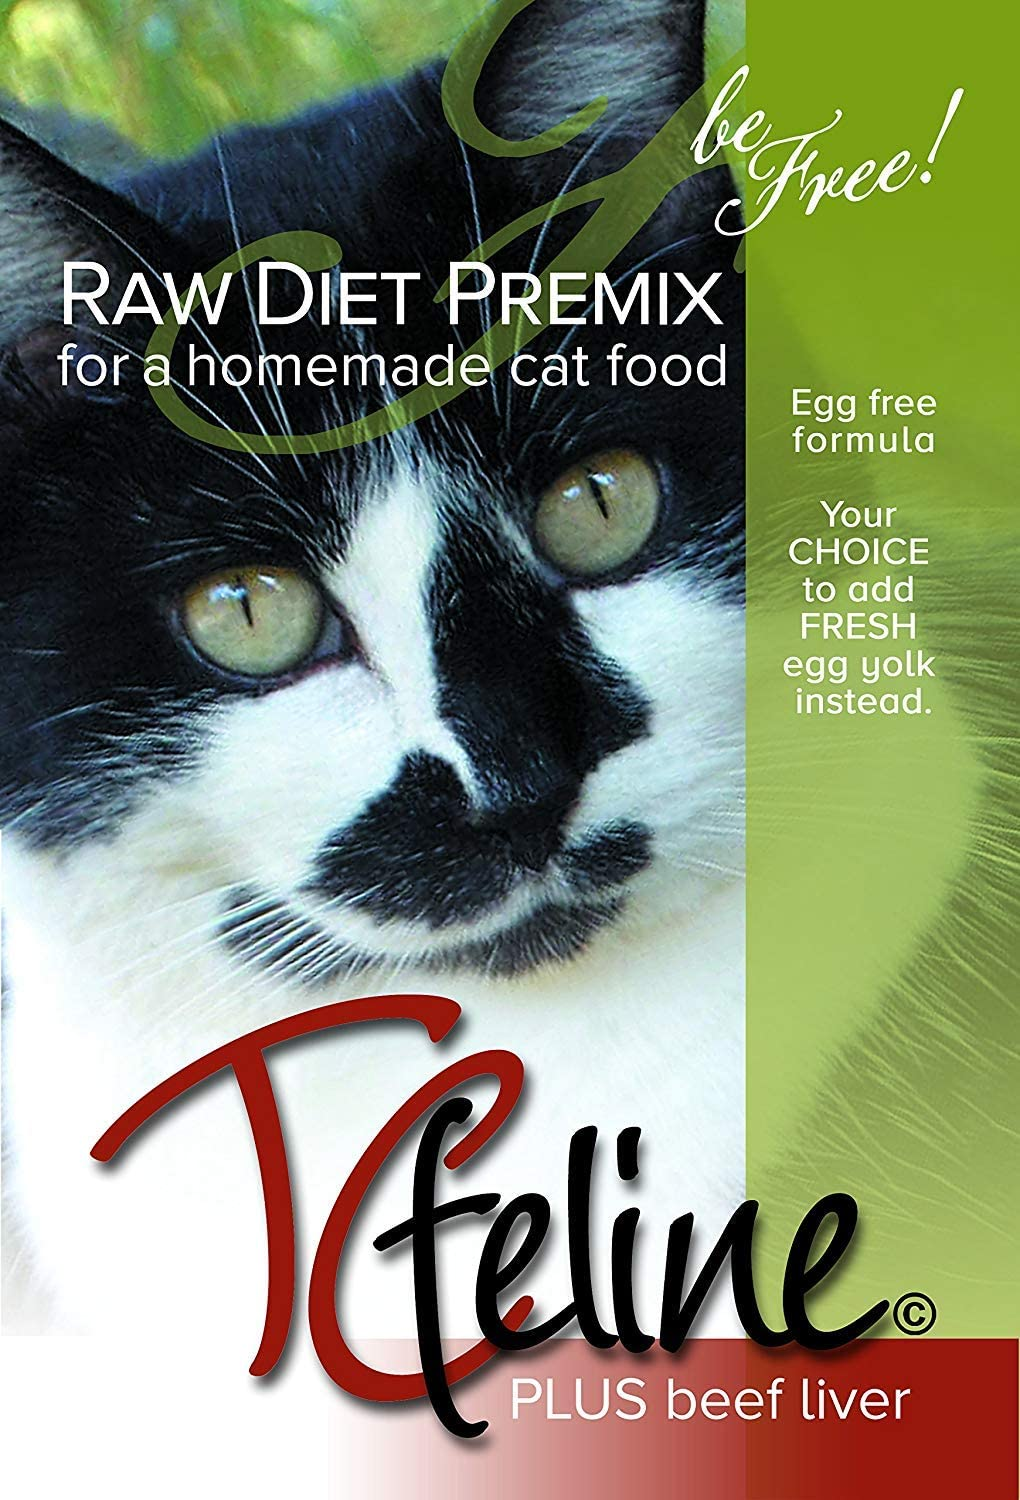 TCfeline RAW Cat Food Supplement/Premix for a Homemade, All Natural, Grain Free, Holistic Diet – with Beef Liver